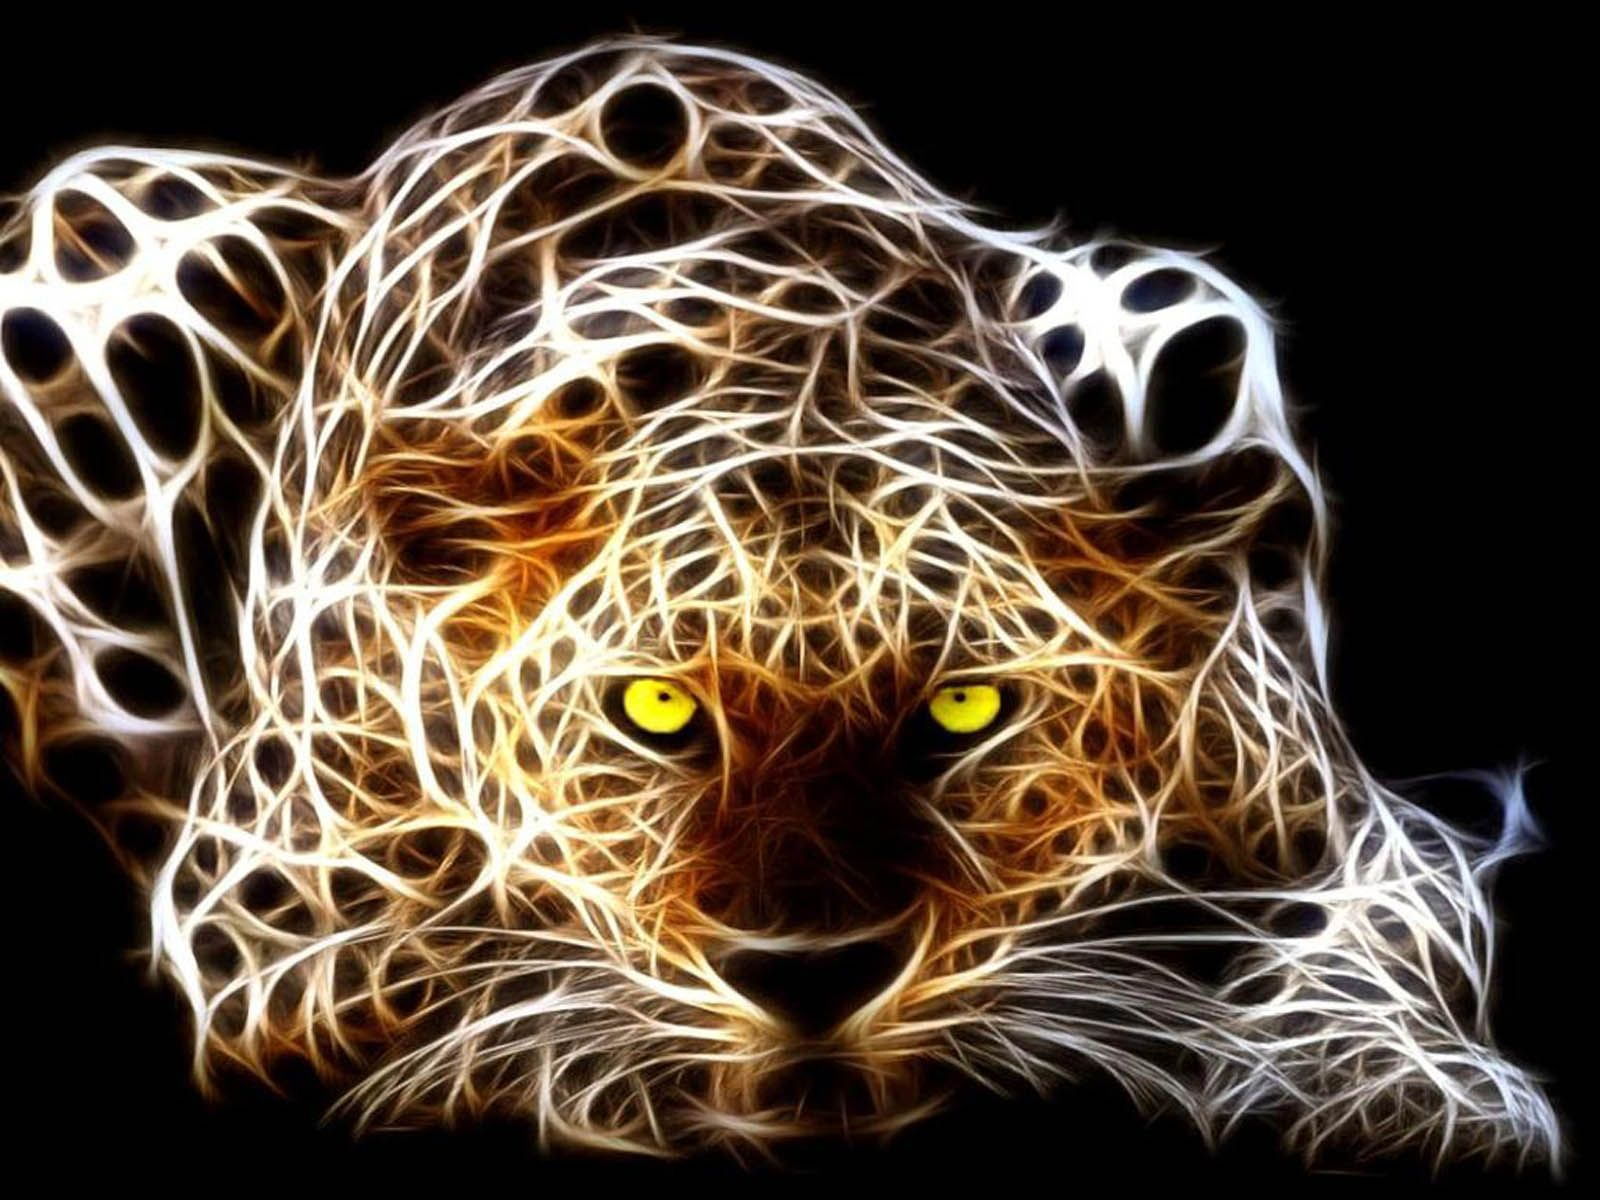 3D Tiger Wallpaper Tag Tiger 3D Wallpapers Images Photos 1600x1200